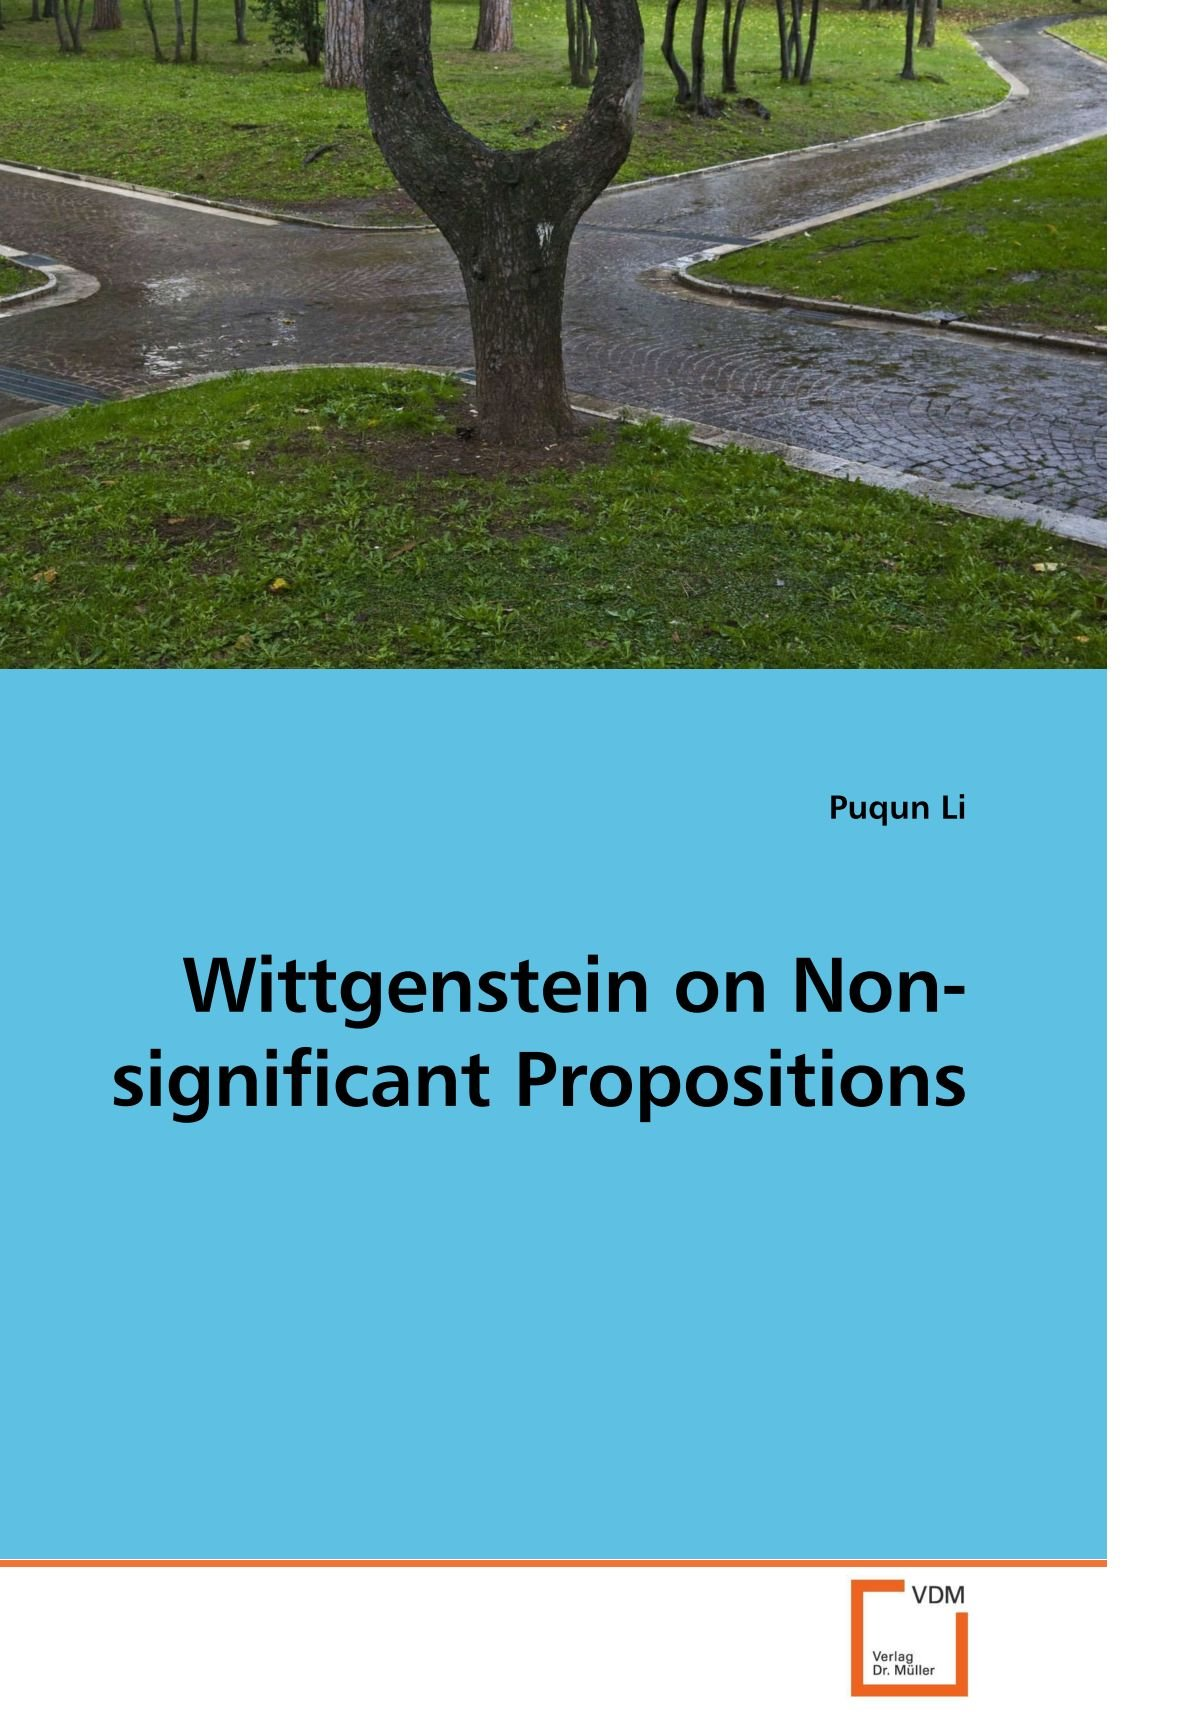 Wittgenstein on Non-significant Propositions pdf